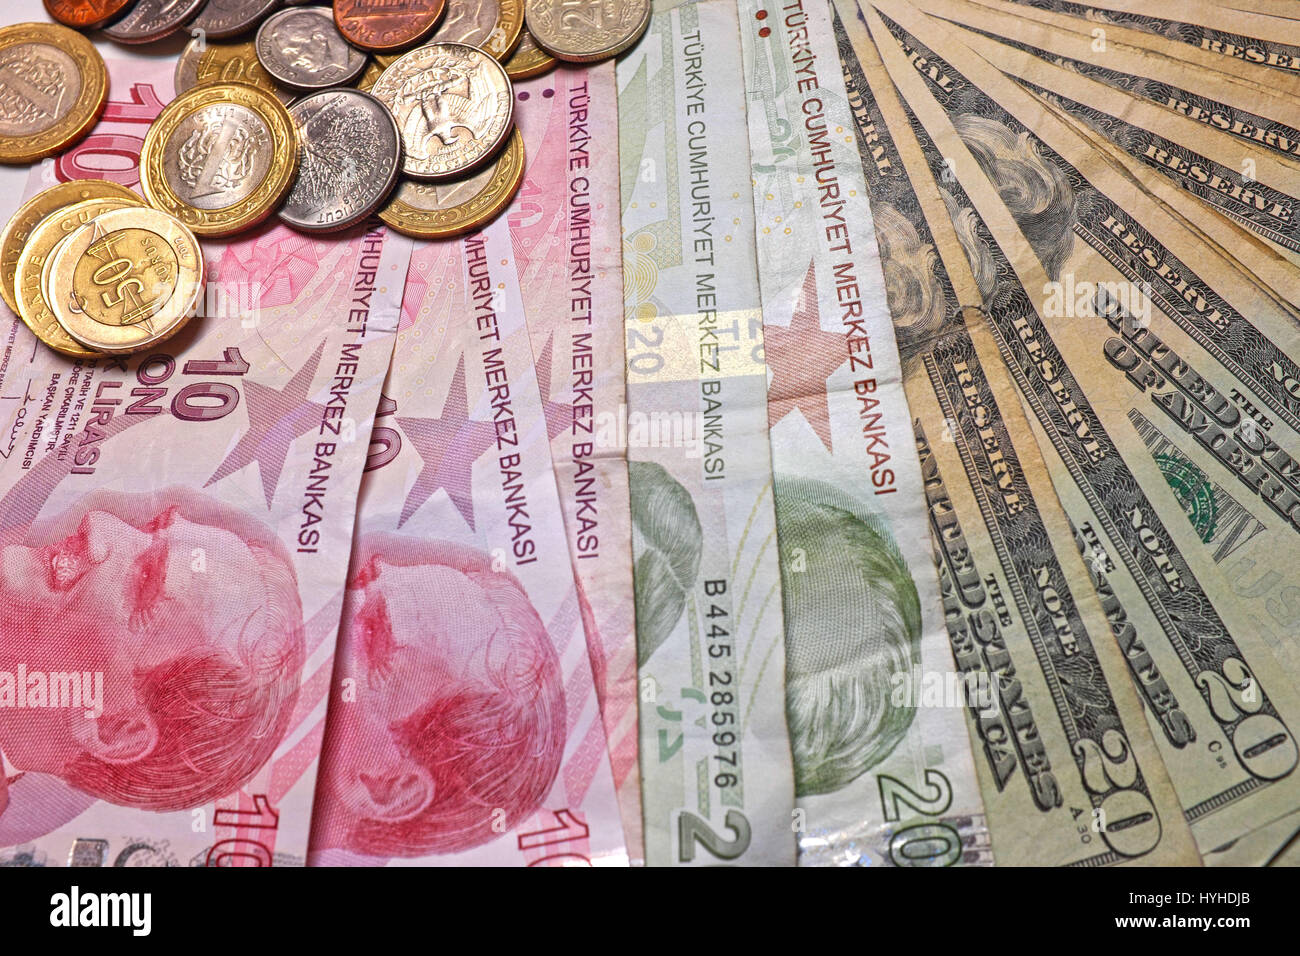 Coins Denominations Dollar Stock Photos & Coins